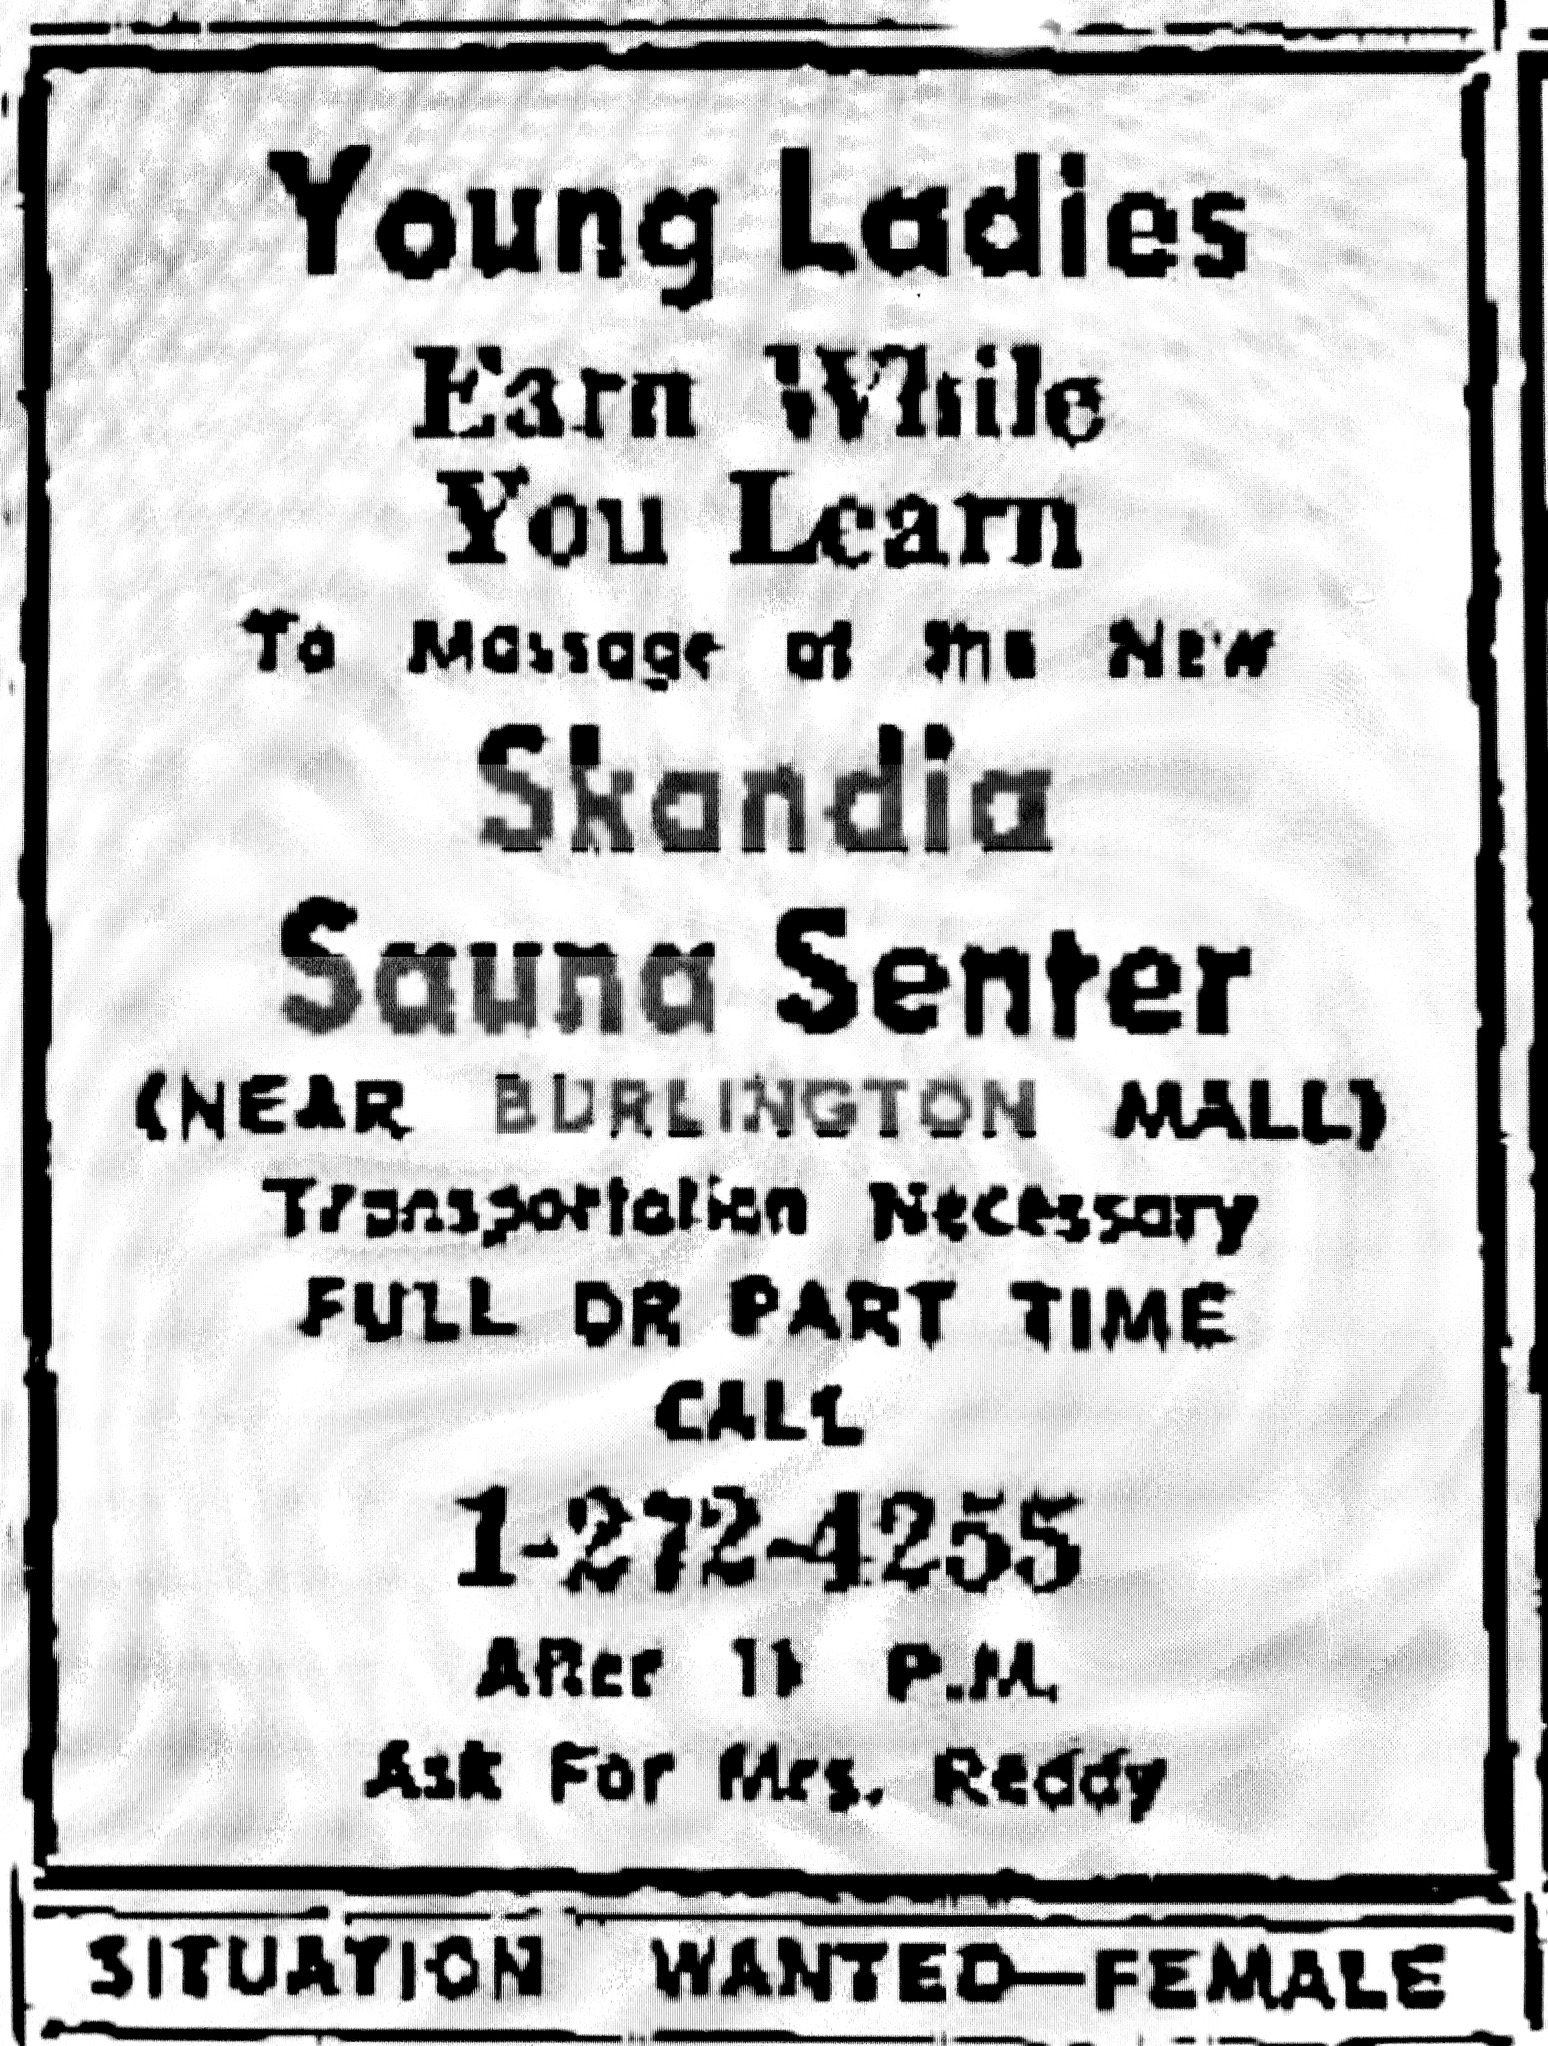 Skandia Sauna Senter ad, Burlington MA